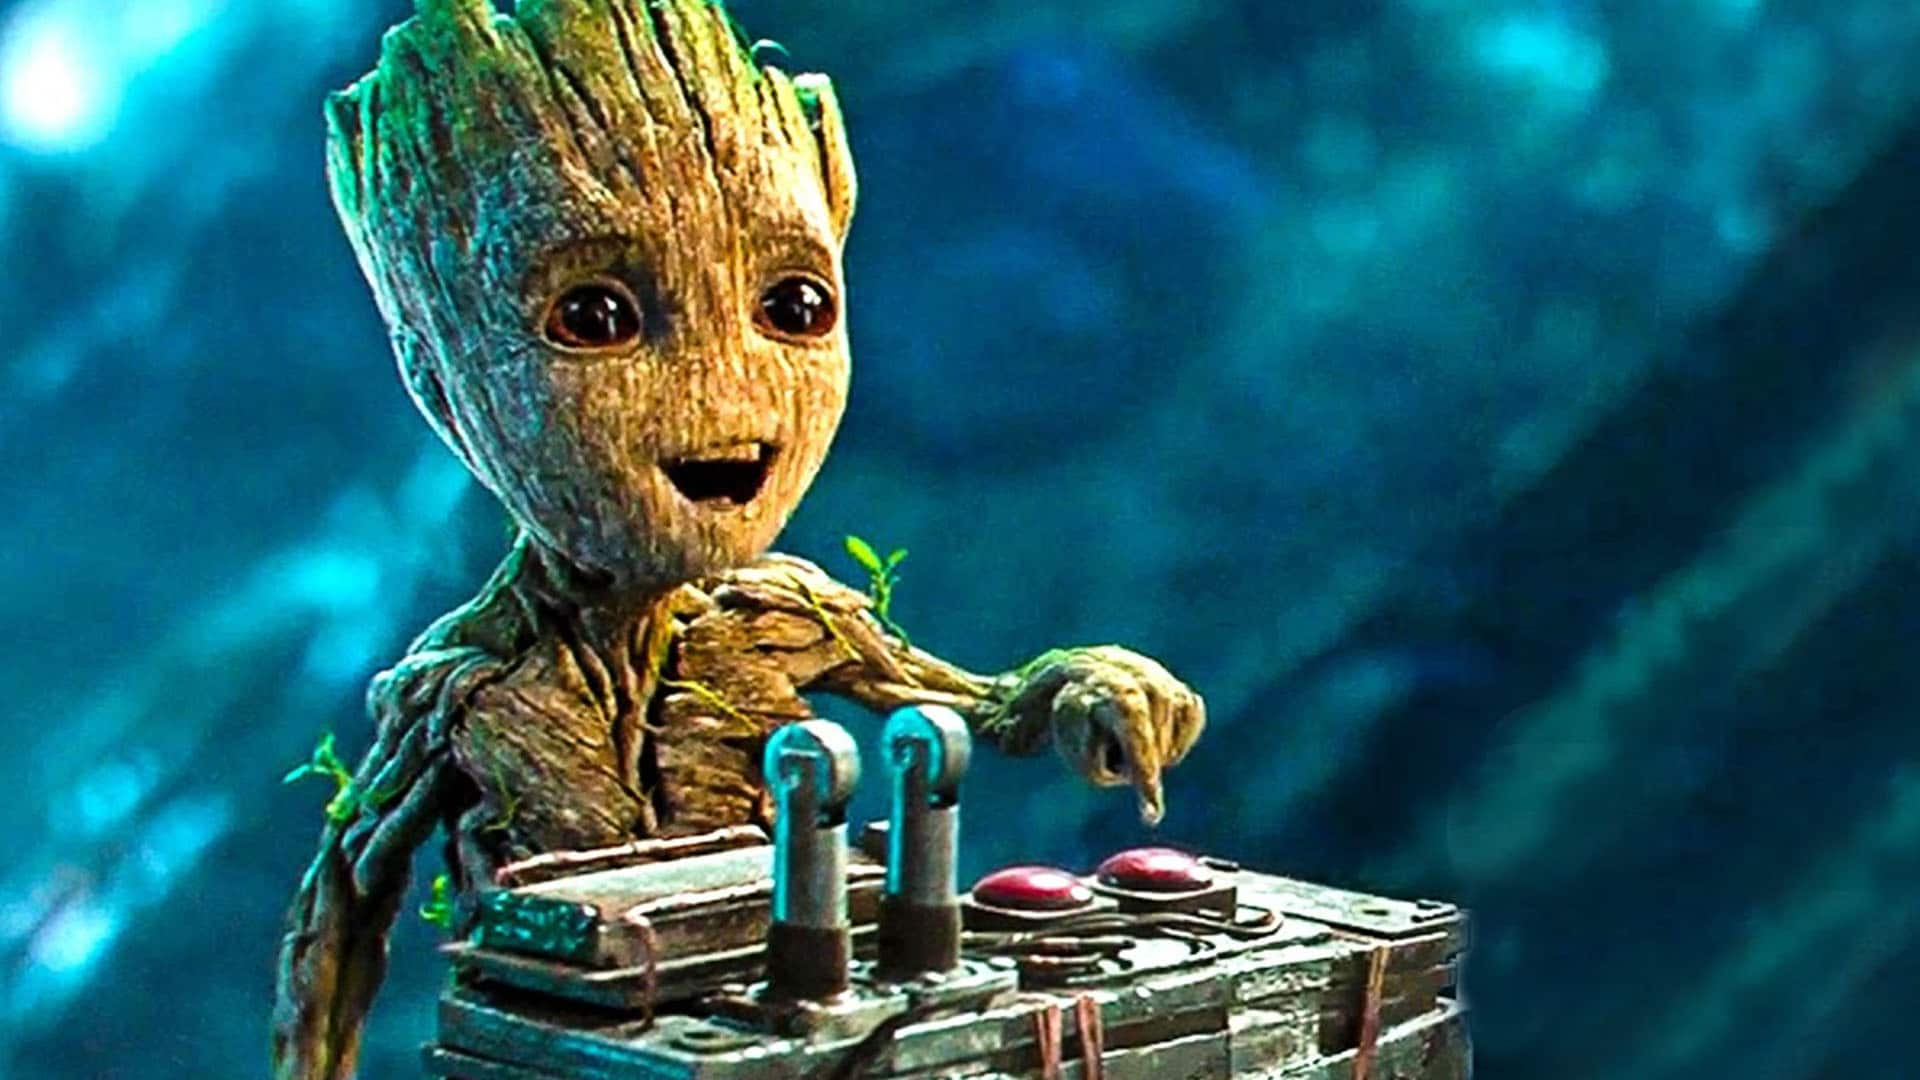 Baby Groot Wallpaper 4k Pictures To Pin On Pinterest